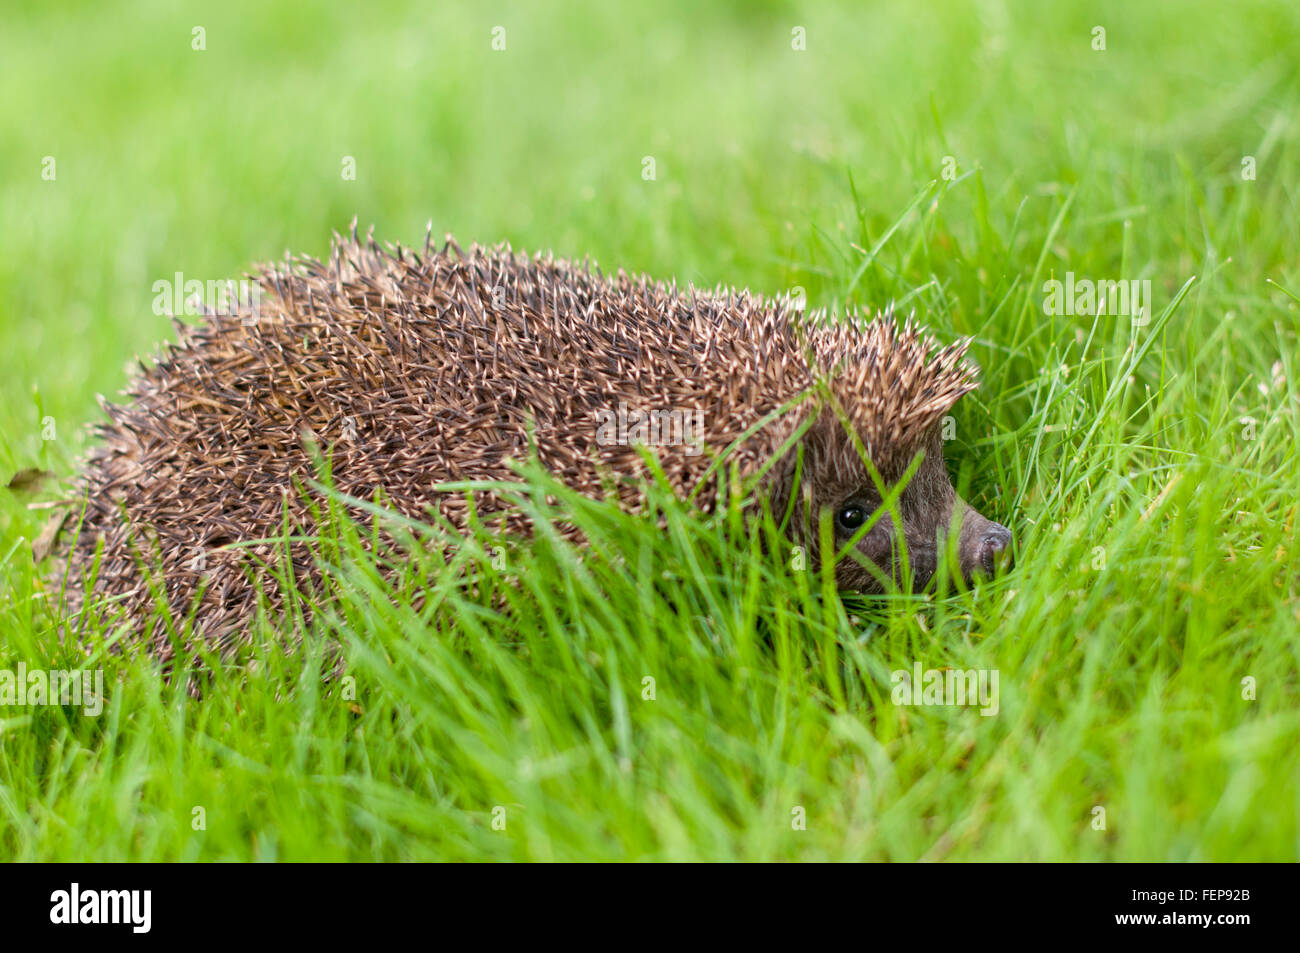 A Hedgehog in the grass- profile - Stock Image